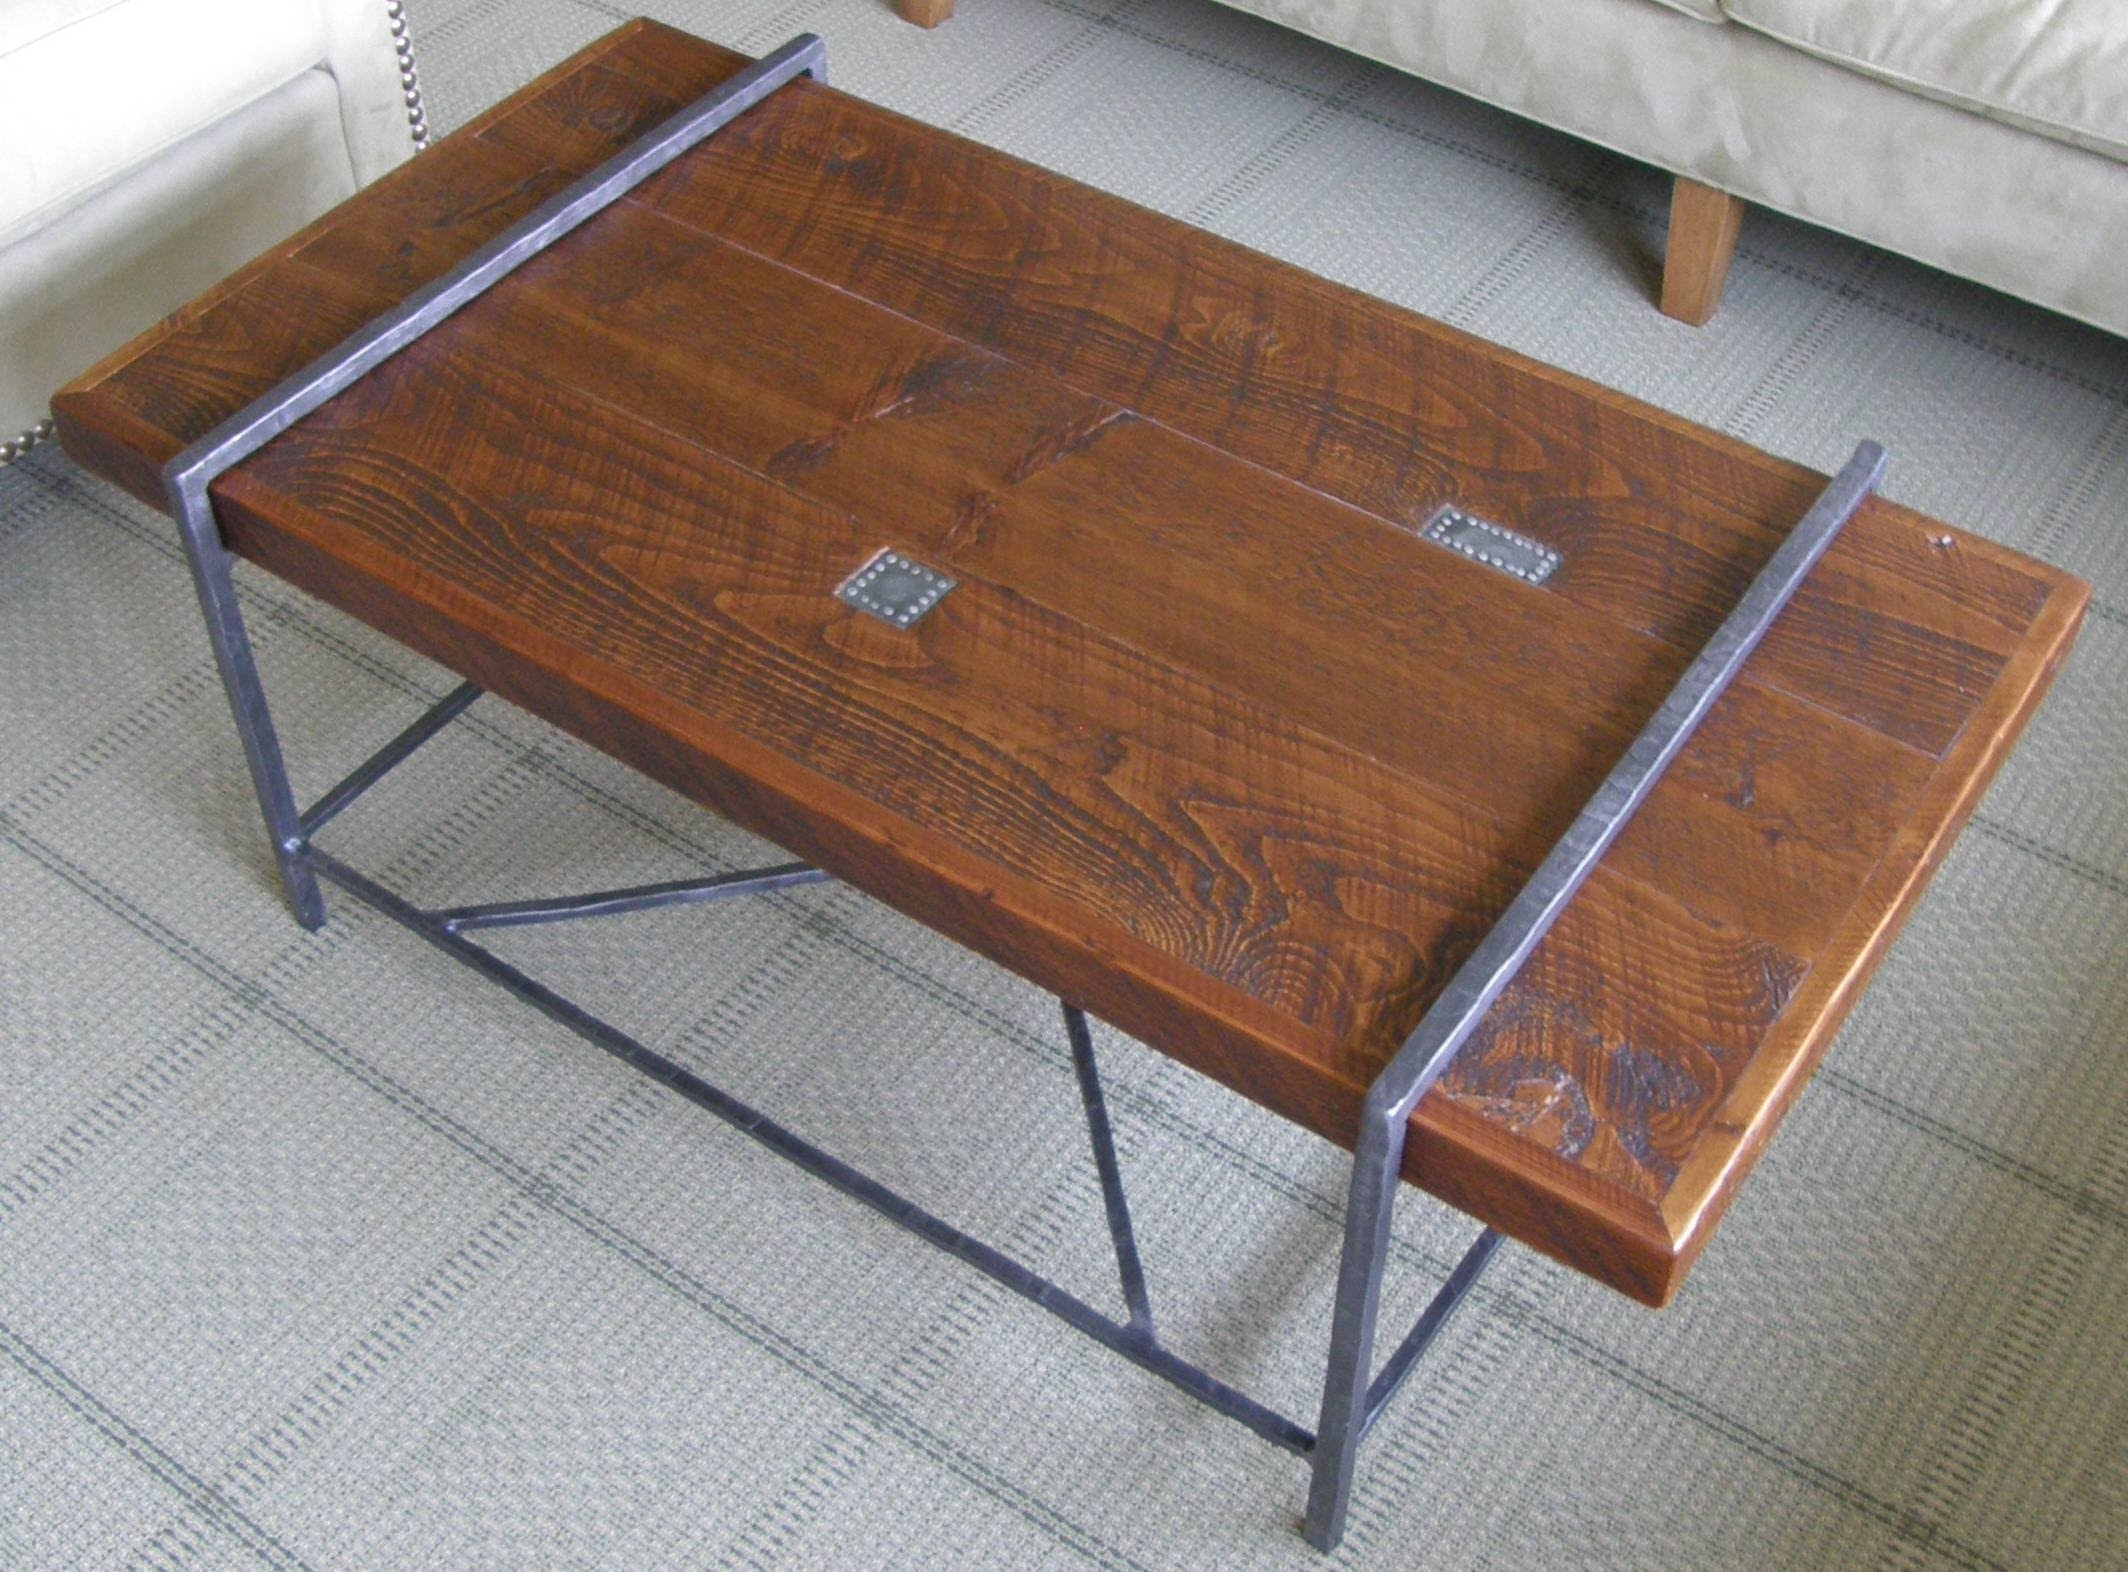 Reclaimed Wood Coffee Table Top With Metal Base – Youtube In Popular Pine Metal Tube Coffee Tables (View 5 of 20)